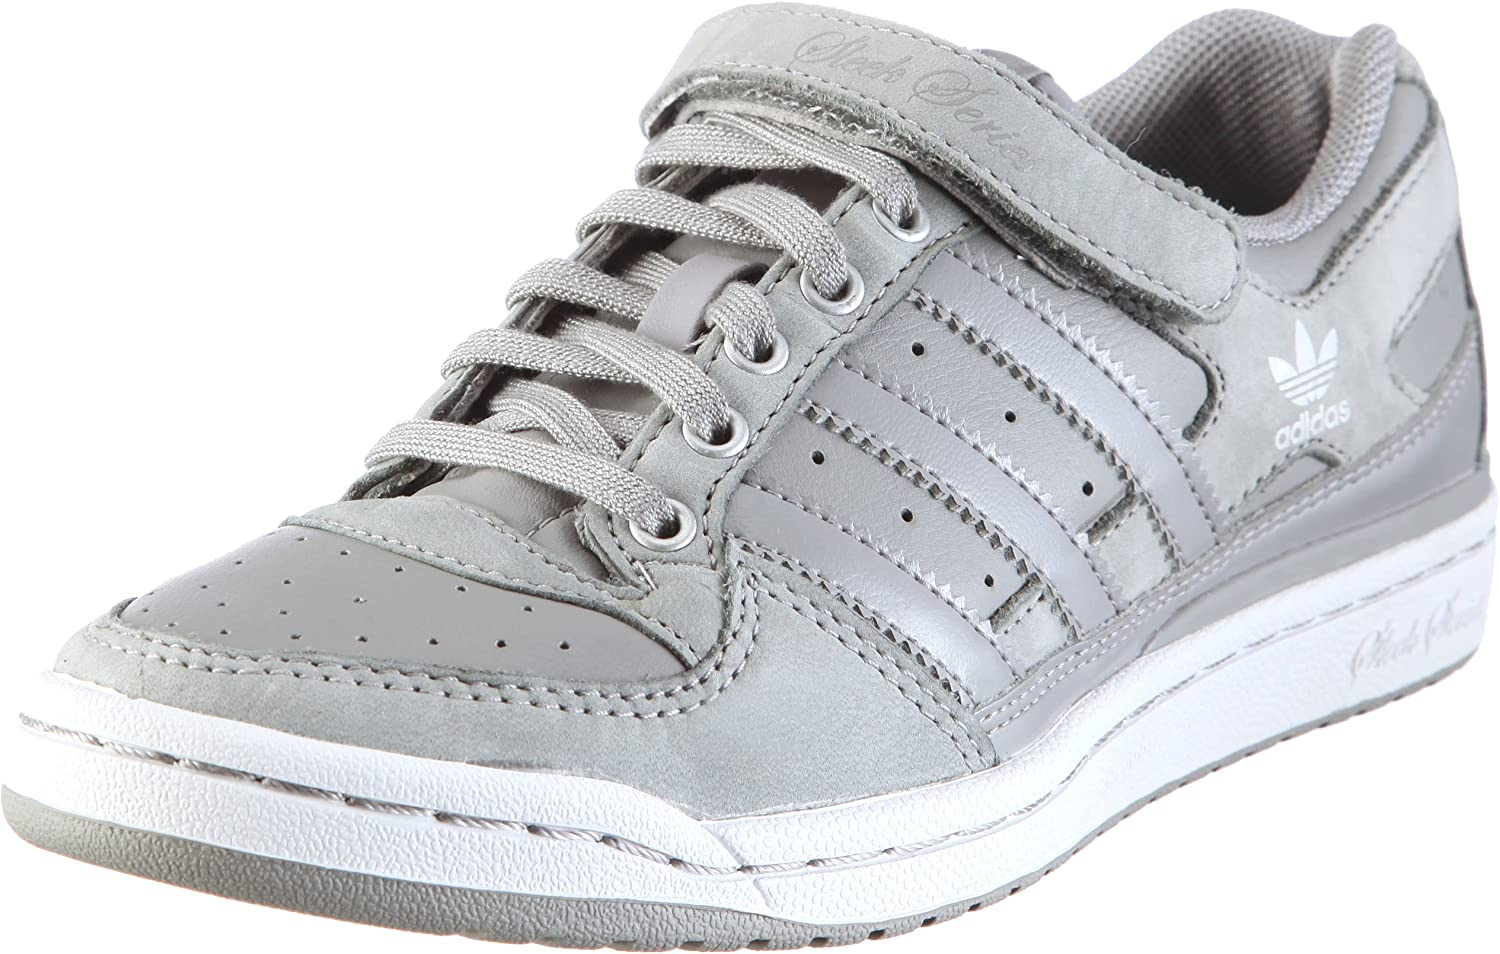 Adidas OriginalsFORUM Sleek W - Zapatillas Mujer, Color Gris ...